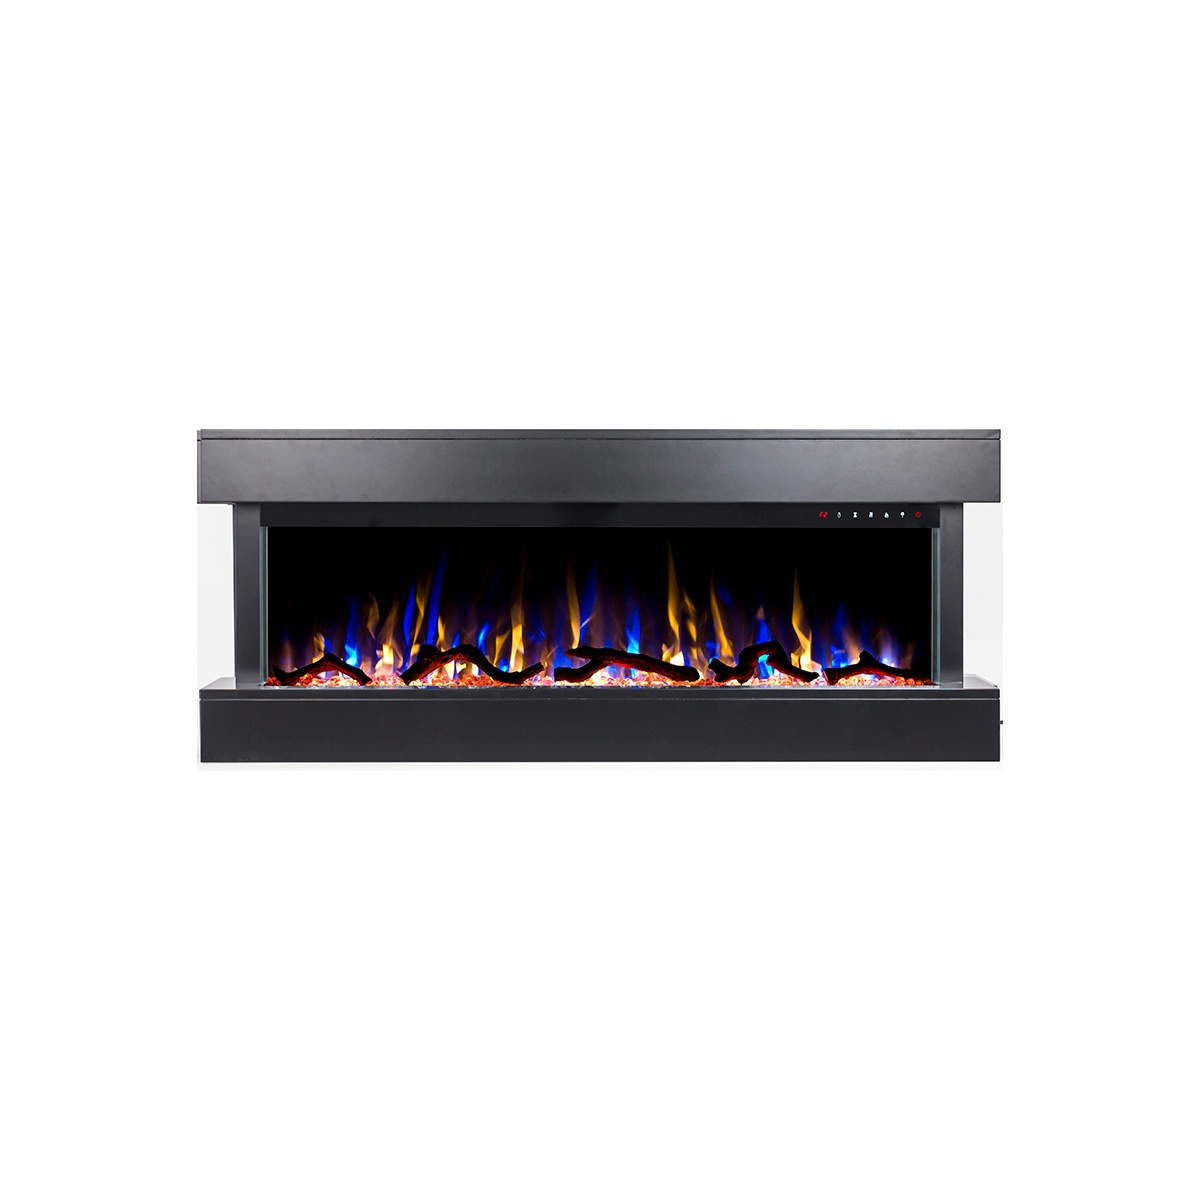 50 inch wall mounted electric fireplace with black mantel